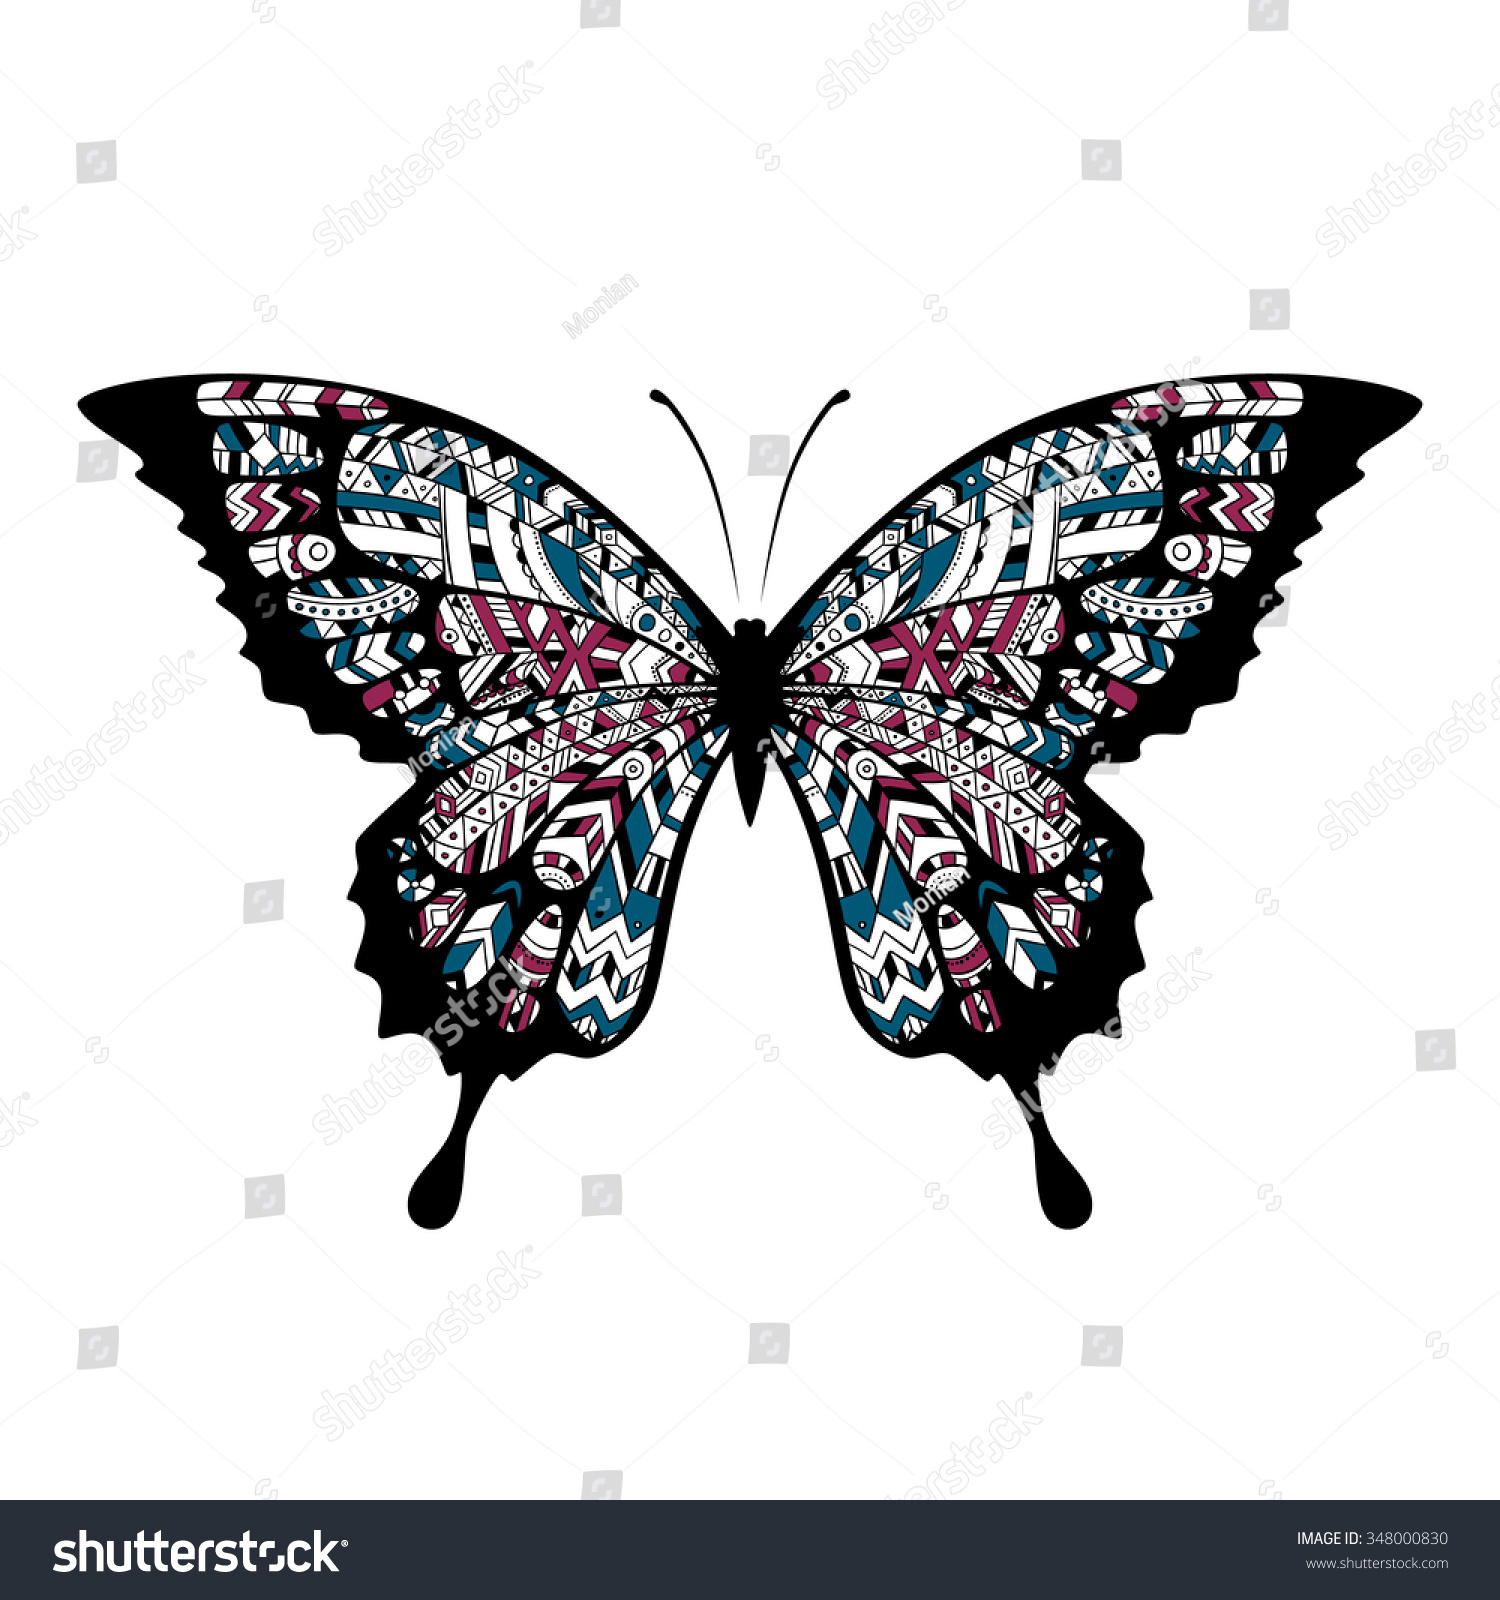 decorative boho butterfly tattoo indian cherokee apache warrior style t shirt print vector. Black Bedroom Furniture Sets. Home Design Ideas